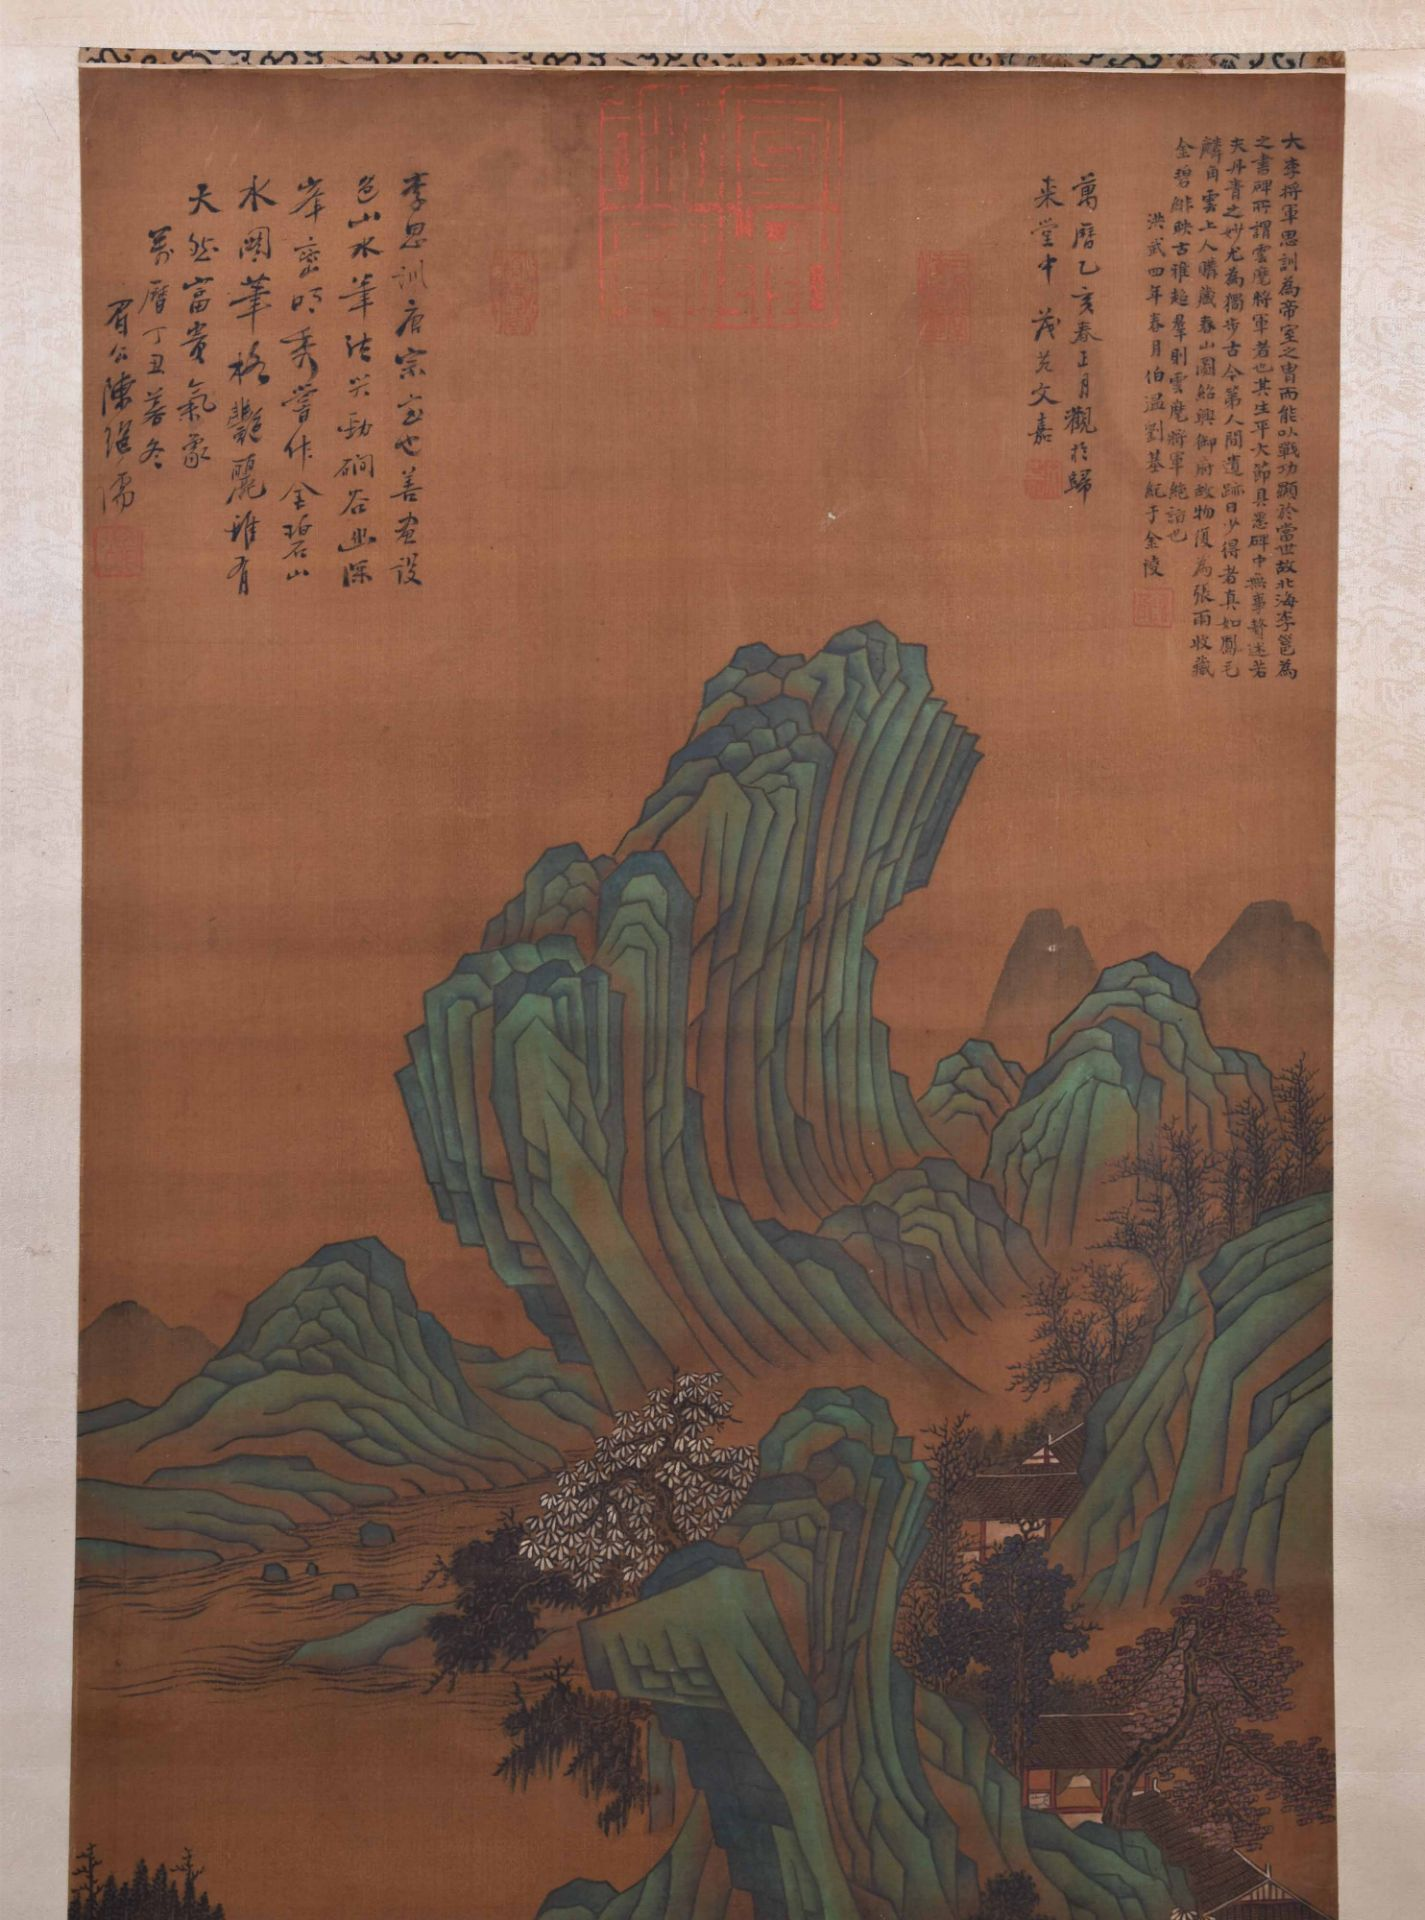 Scroll painting China Qing dynasty - Image 2 of 5